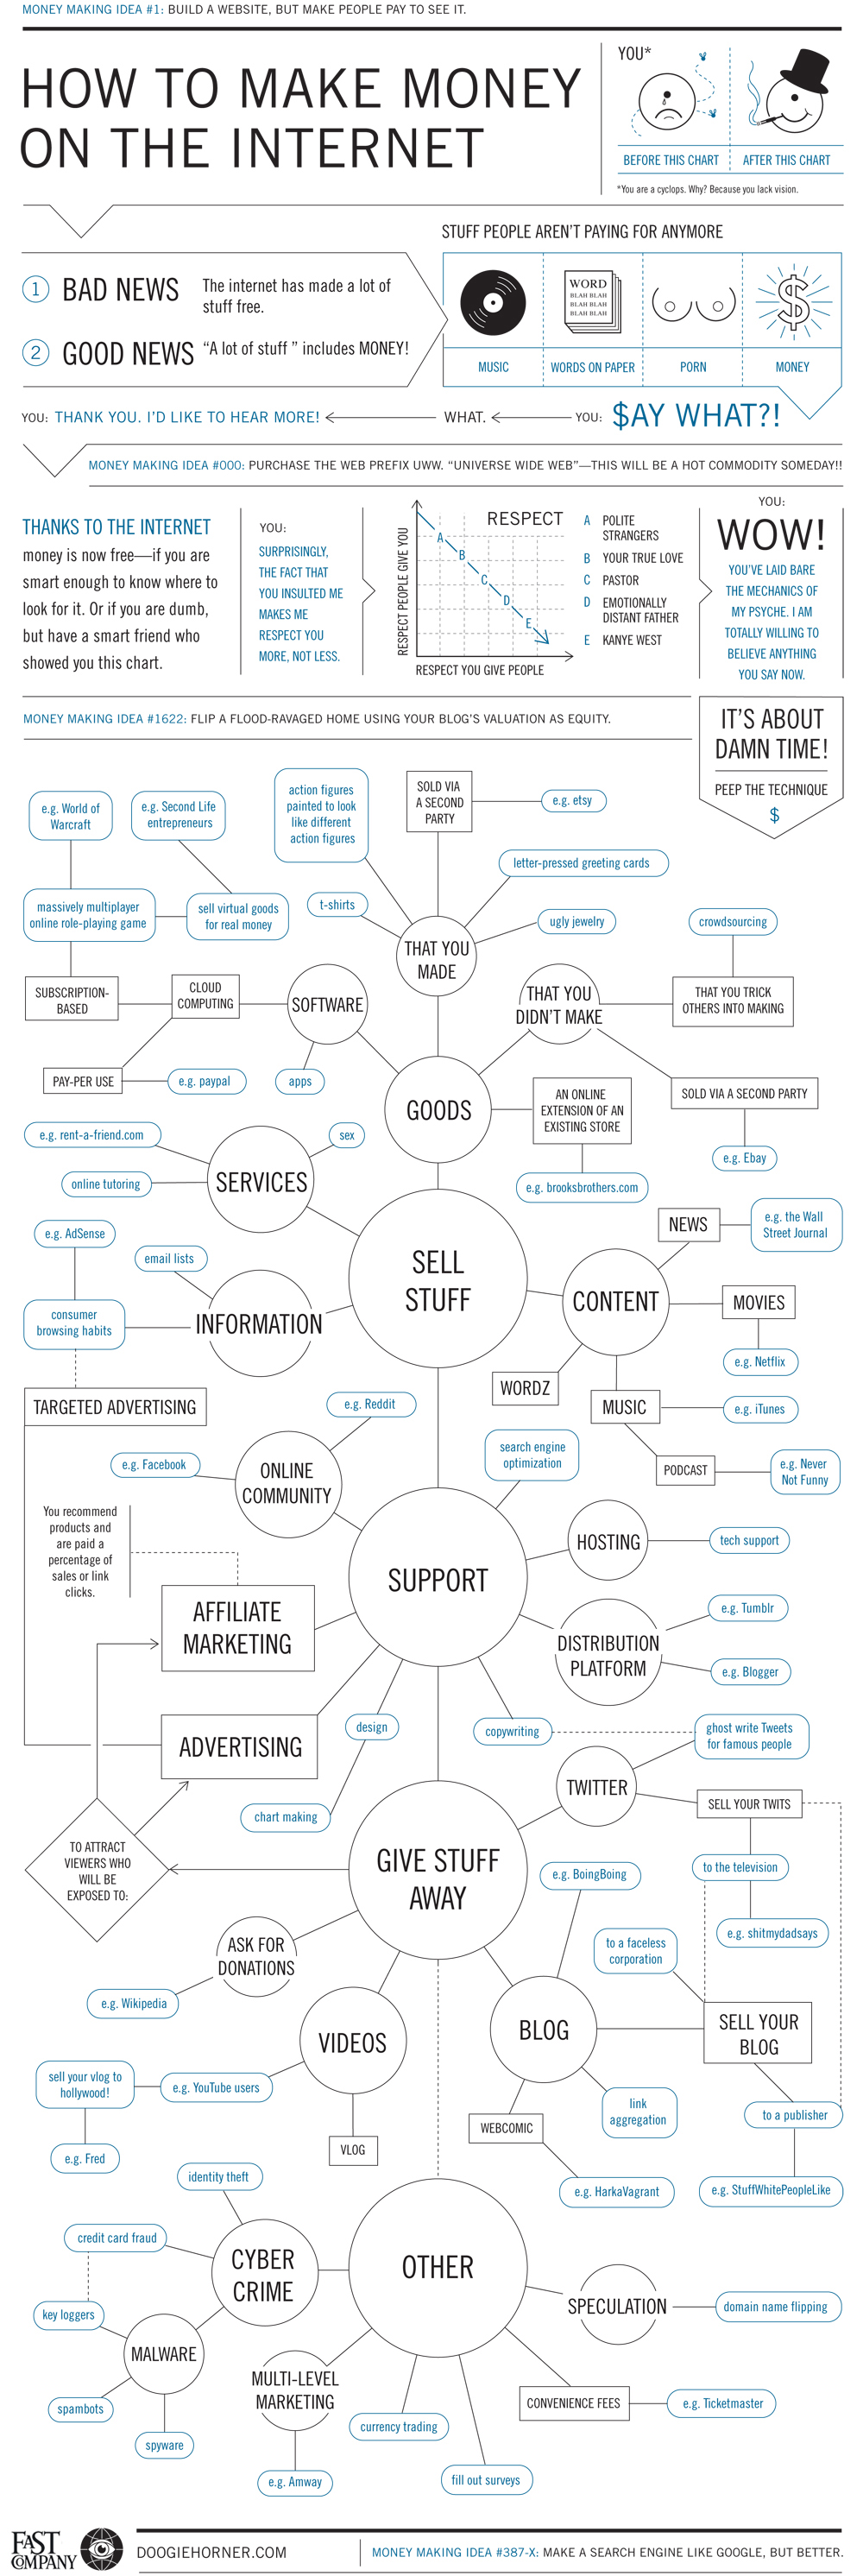 How To Make Money On The Internet (Flowchart)